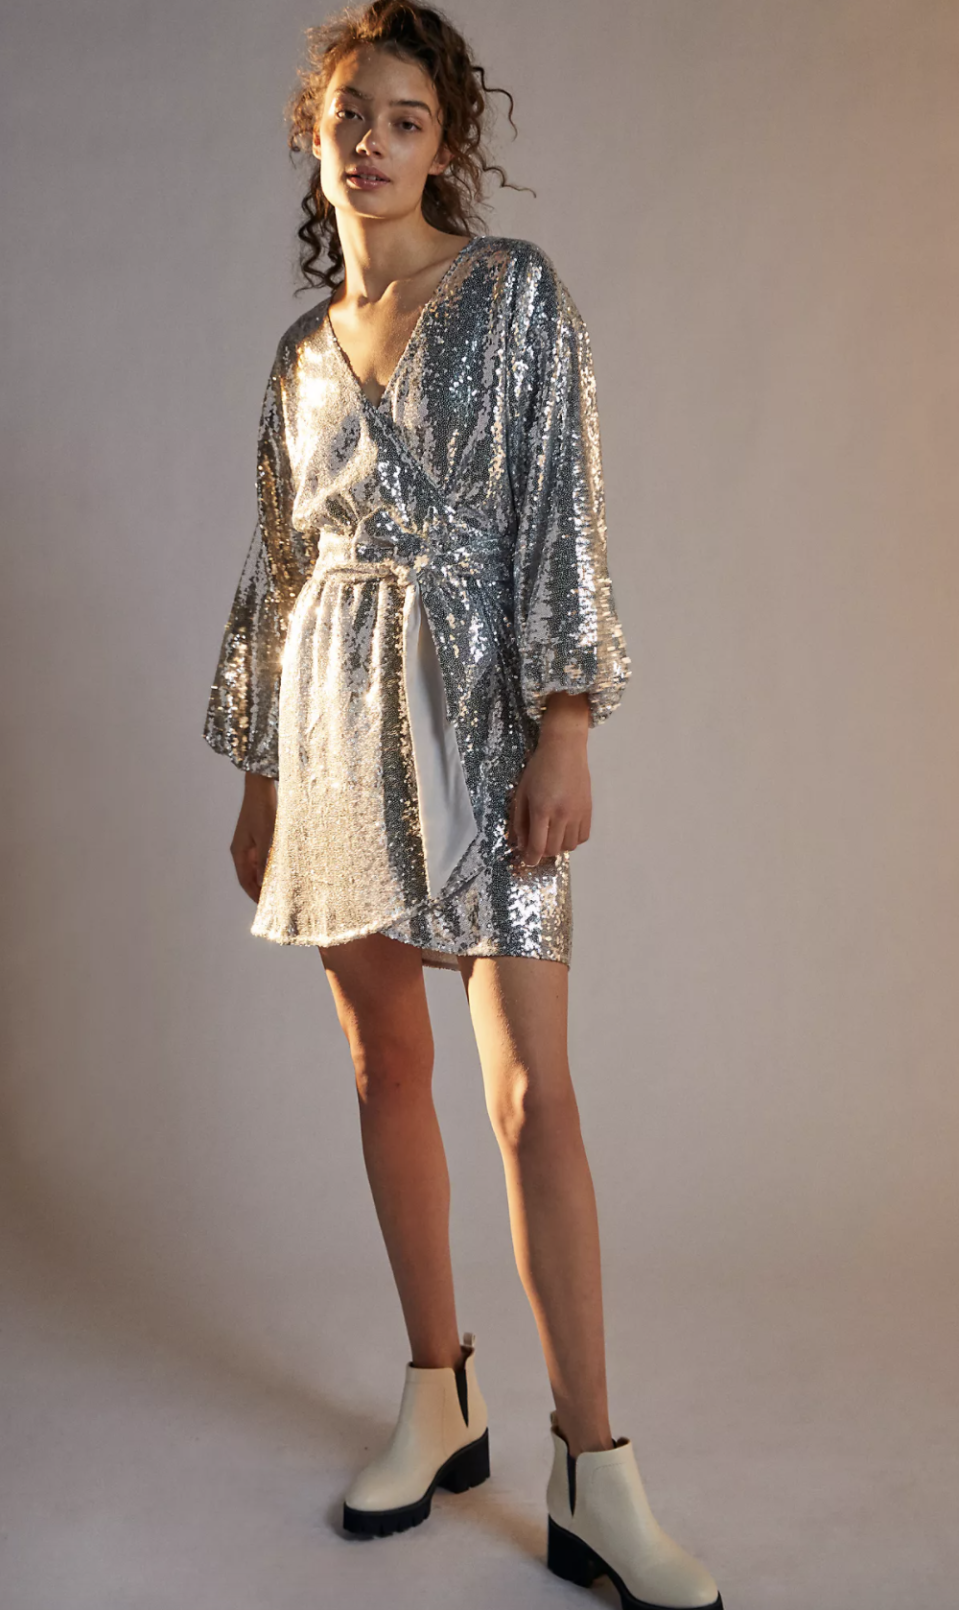 Lisabette Sequined Mini Dress - Anthropologie, $100 (originally $178)